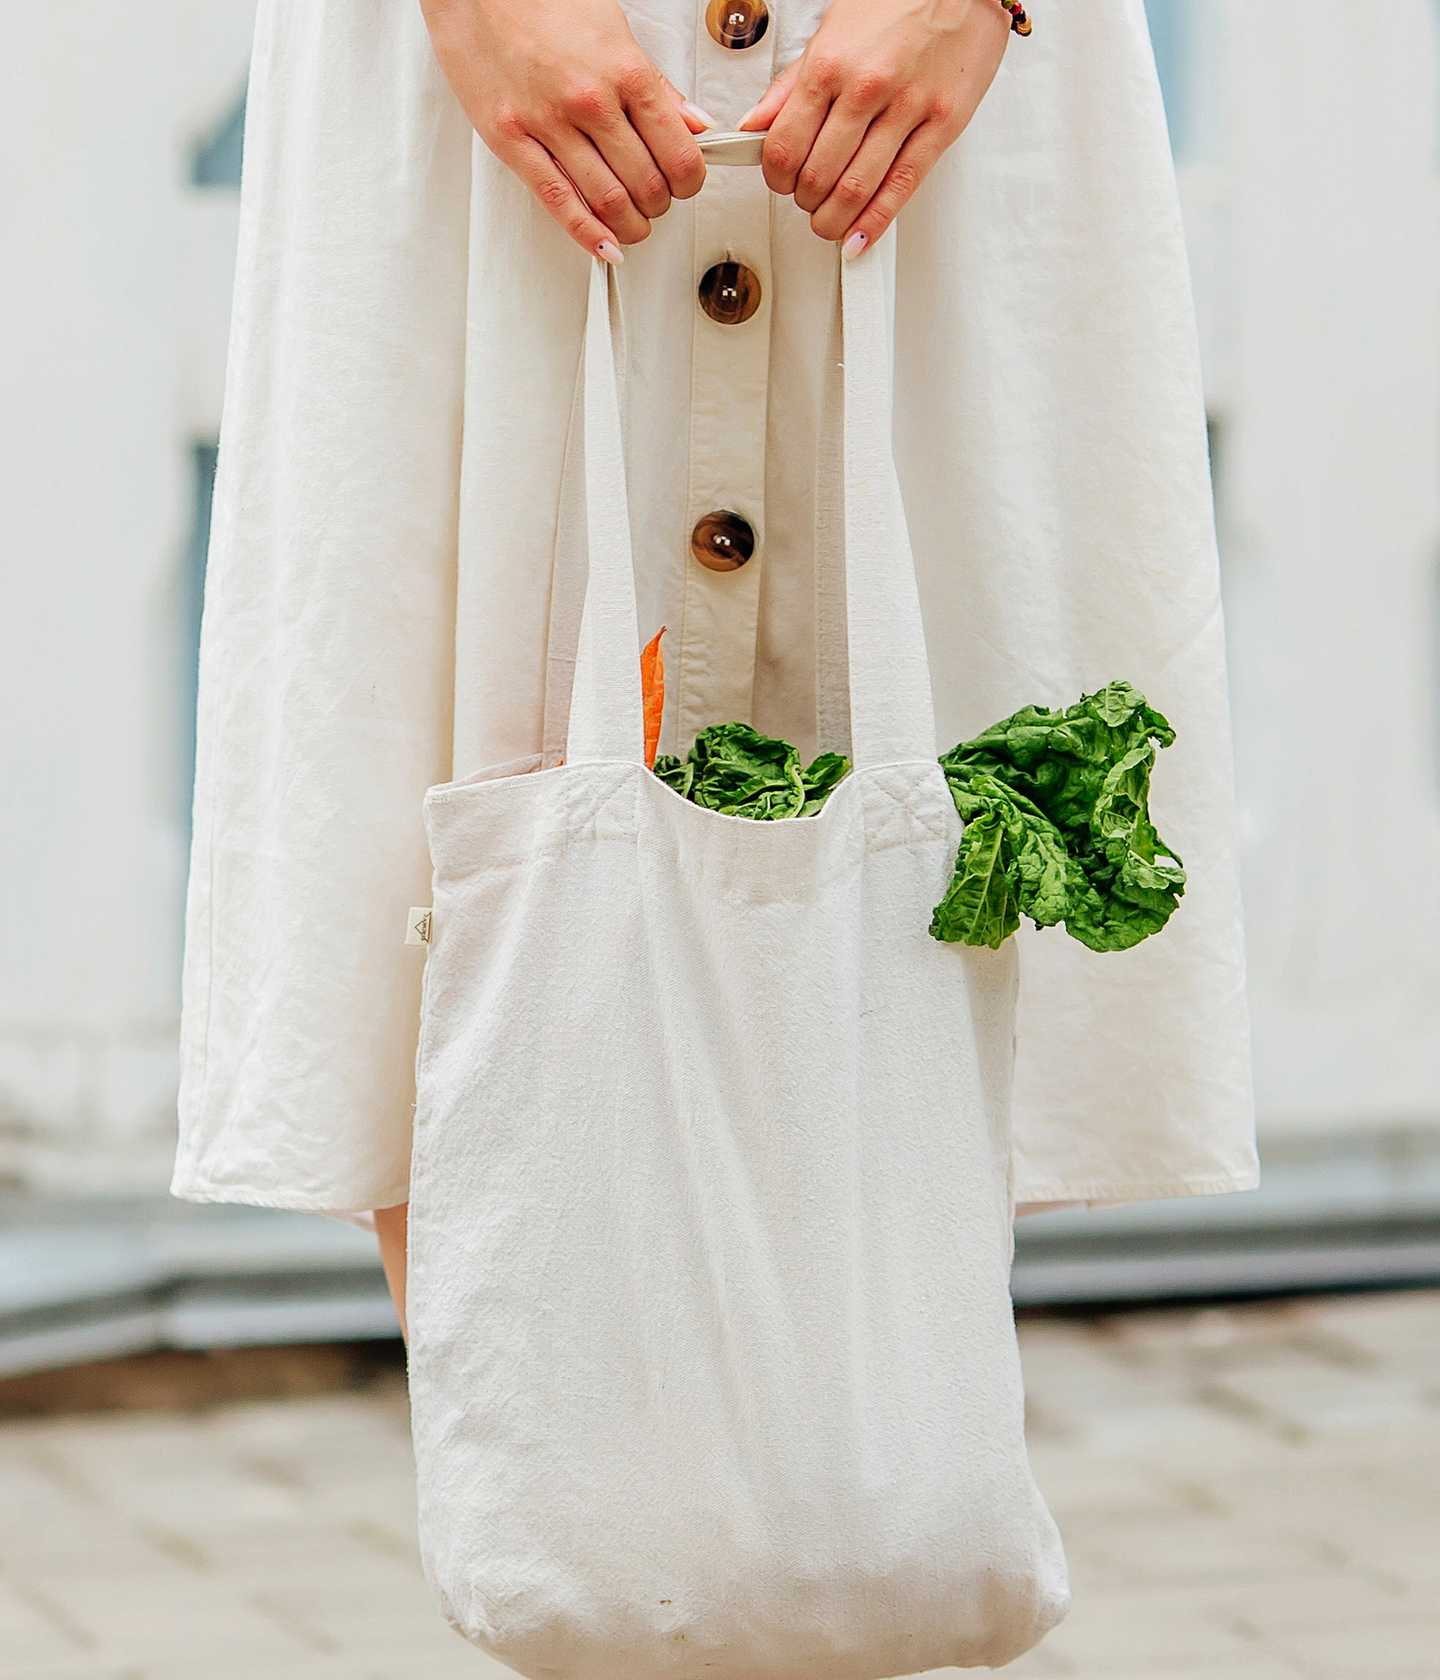 Person holding cloth shopping bag full of veggies